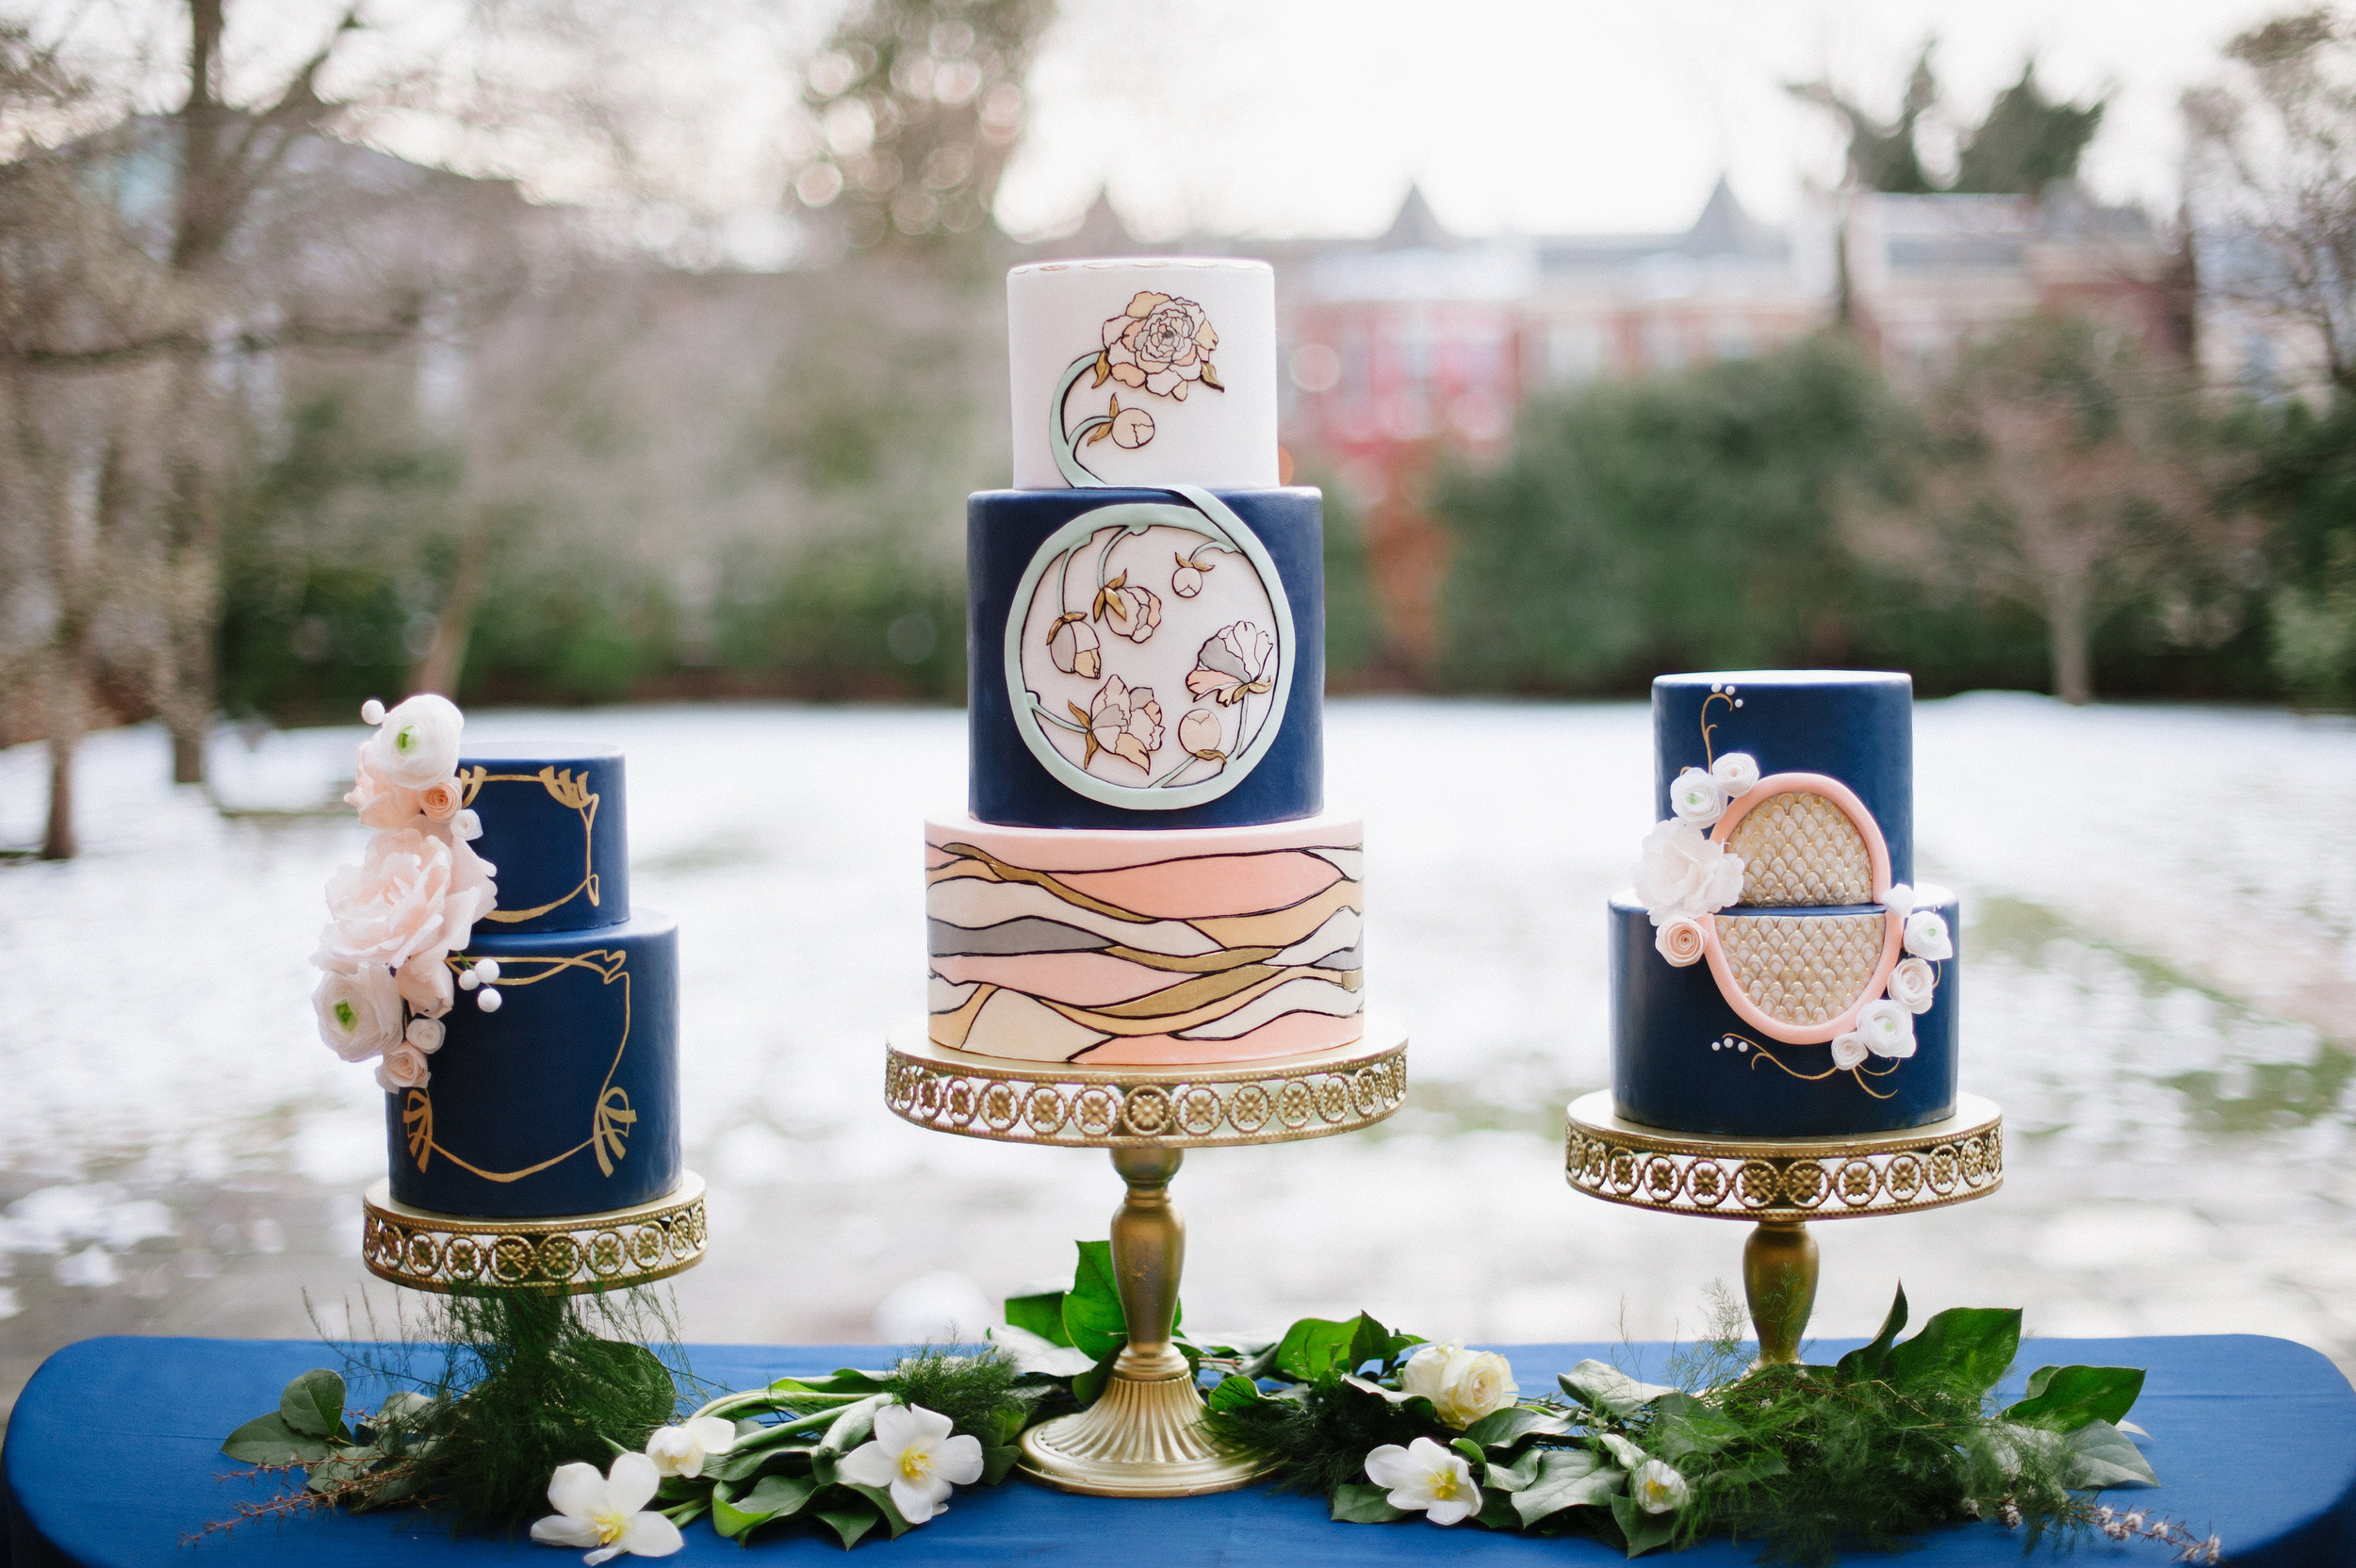 Art Deco Art Nouveau Wafer Paper Flowers Wedding Cakes - Photo by Jessica Maida Photography